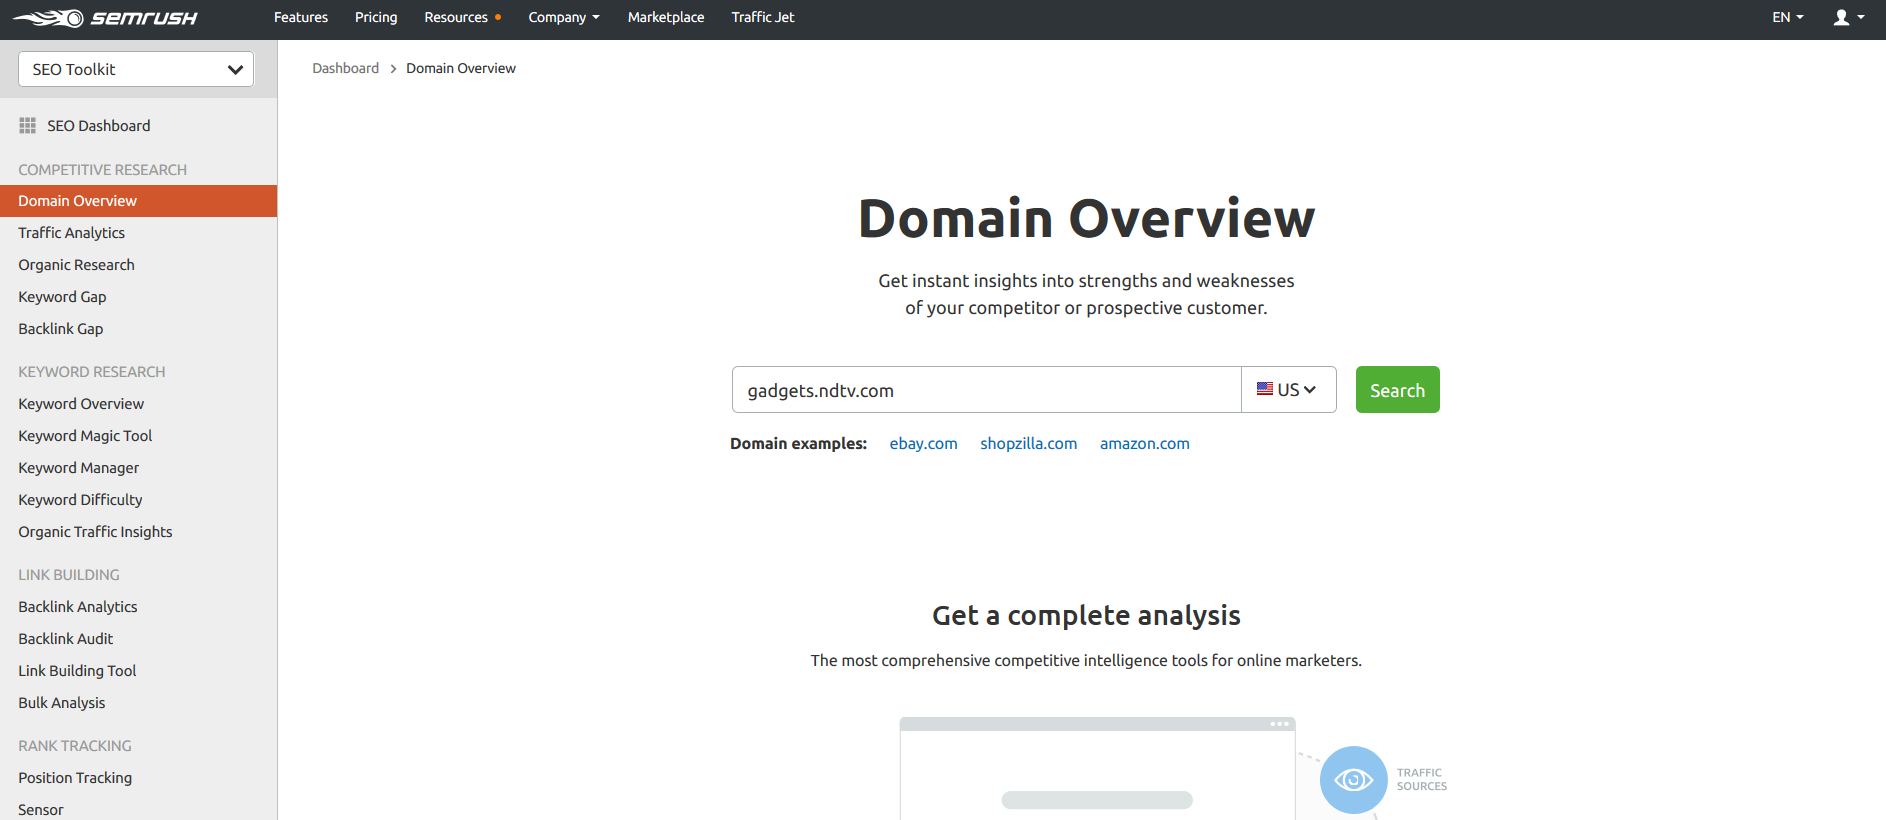 Domain Overview